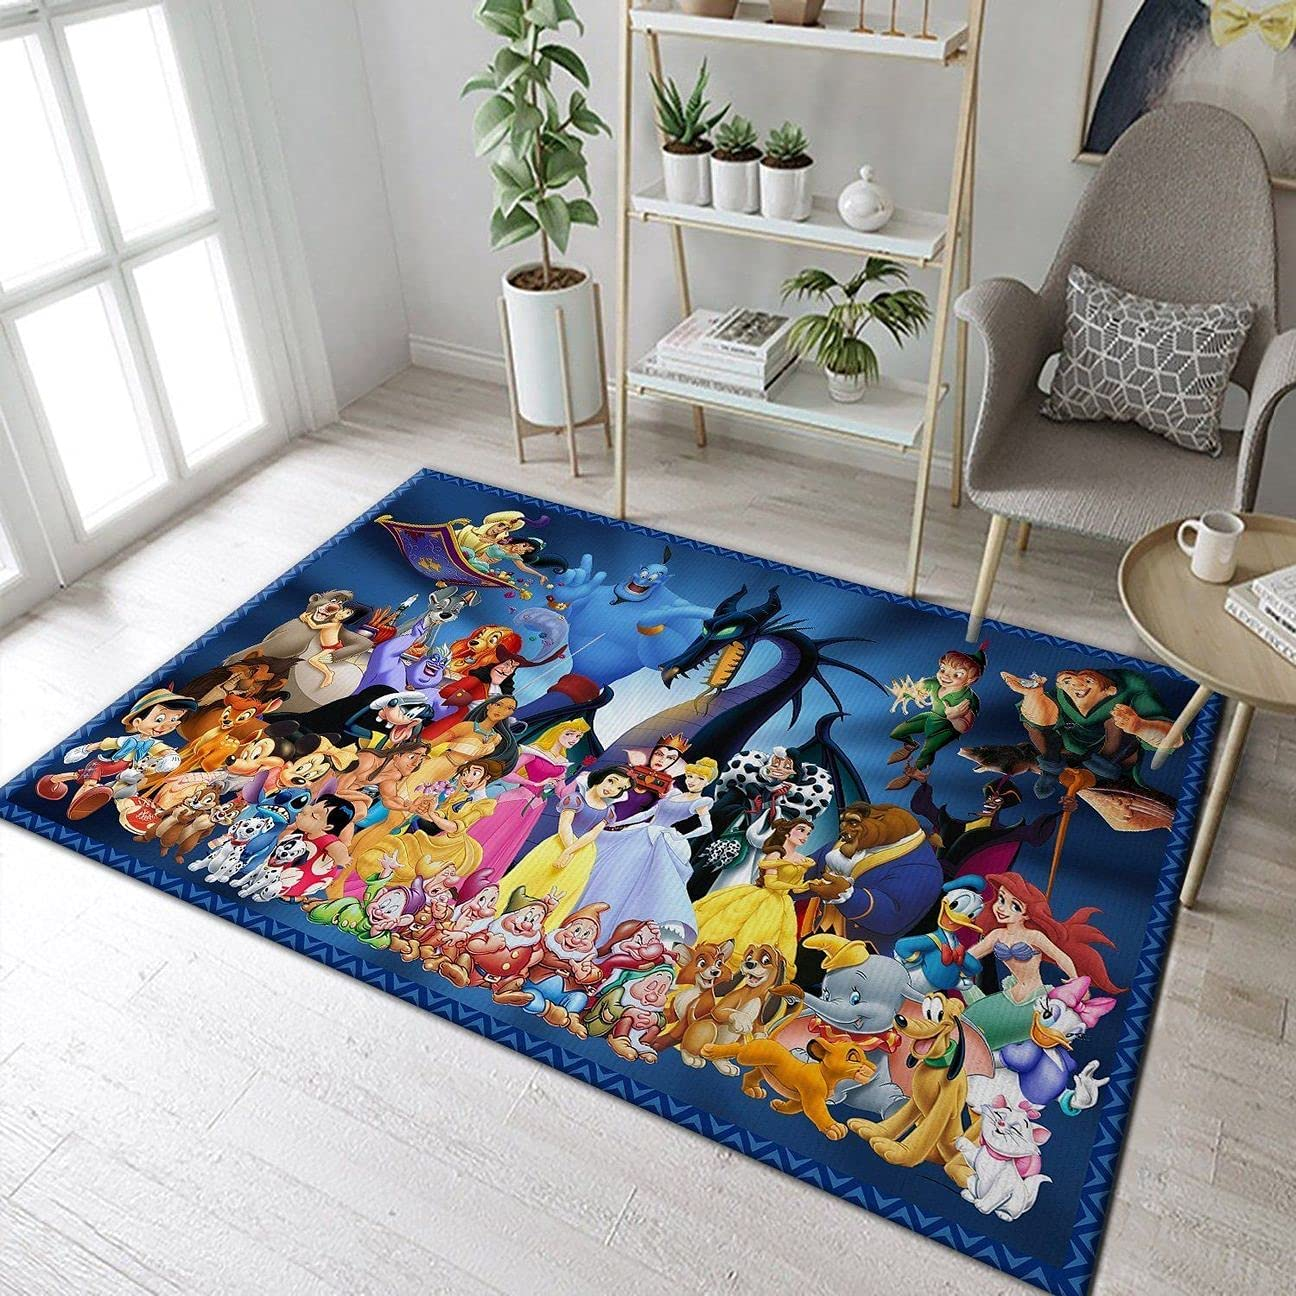 Department store Cartoon Rug Princess and Castle Non- Room 5 ☆ popular for Decor Living